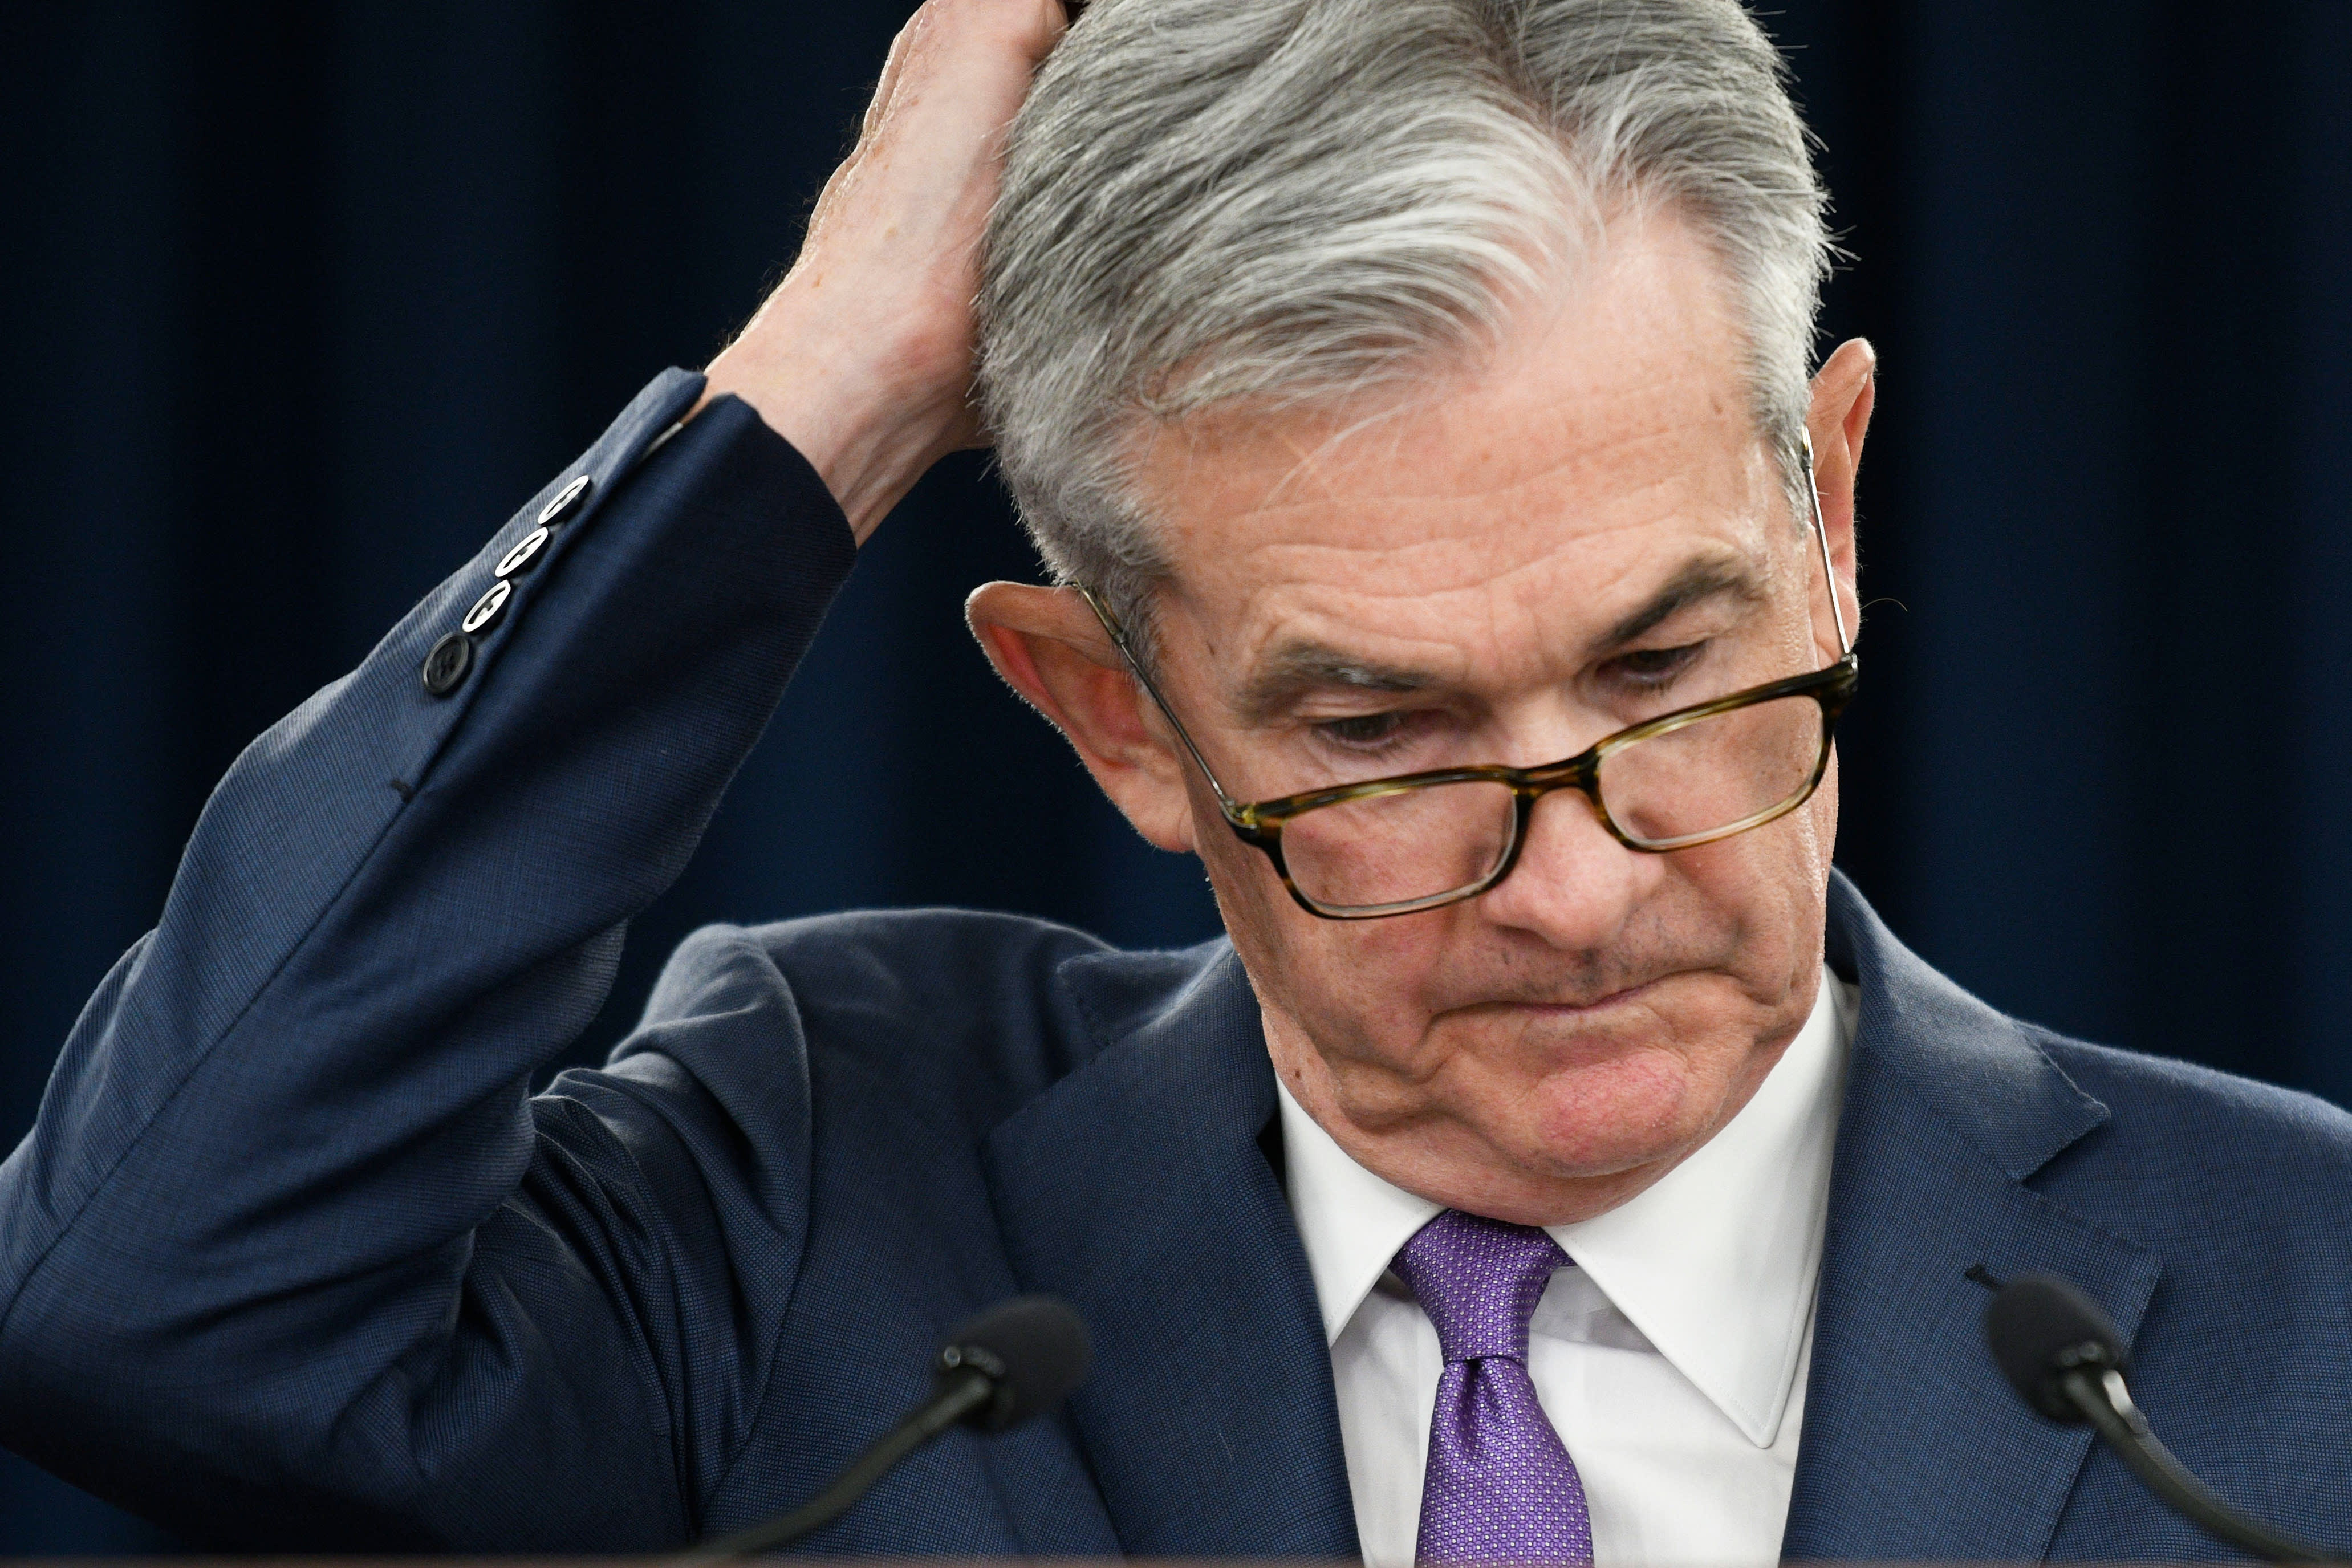 Recession signal could put more pressure on the Fed to keep cutting rates